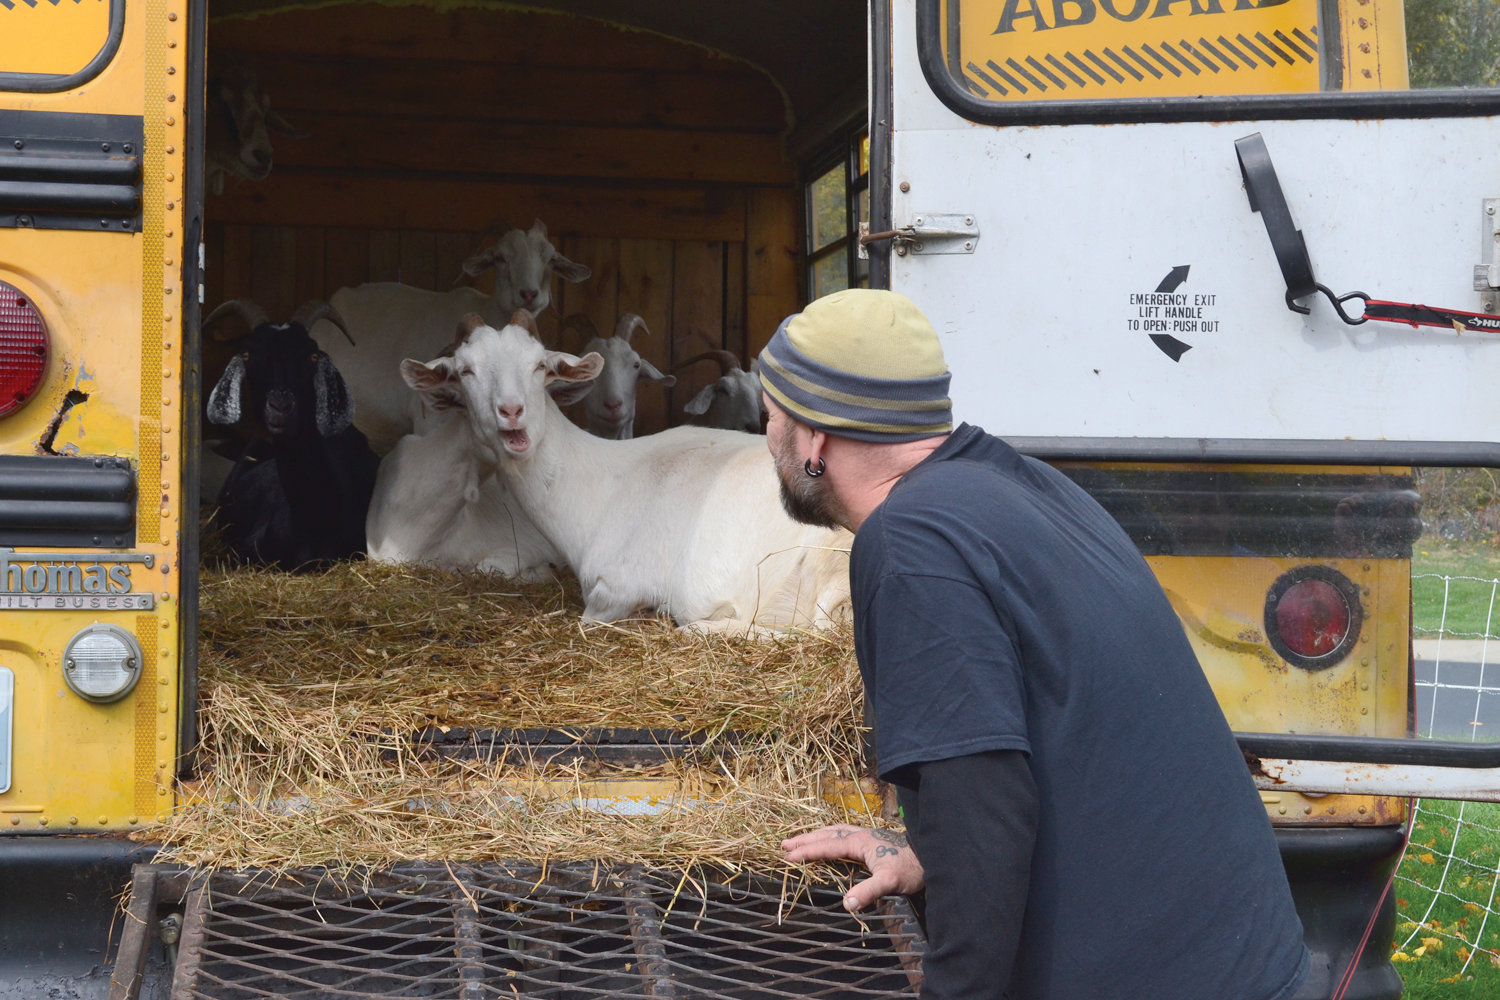 GOAT TOTE: In between munching on vegetation, the goats relax in the school bus-turned-rolling barn, the Goat Tote.